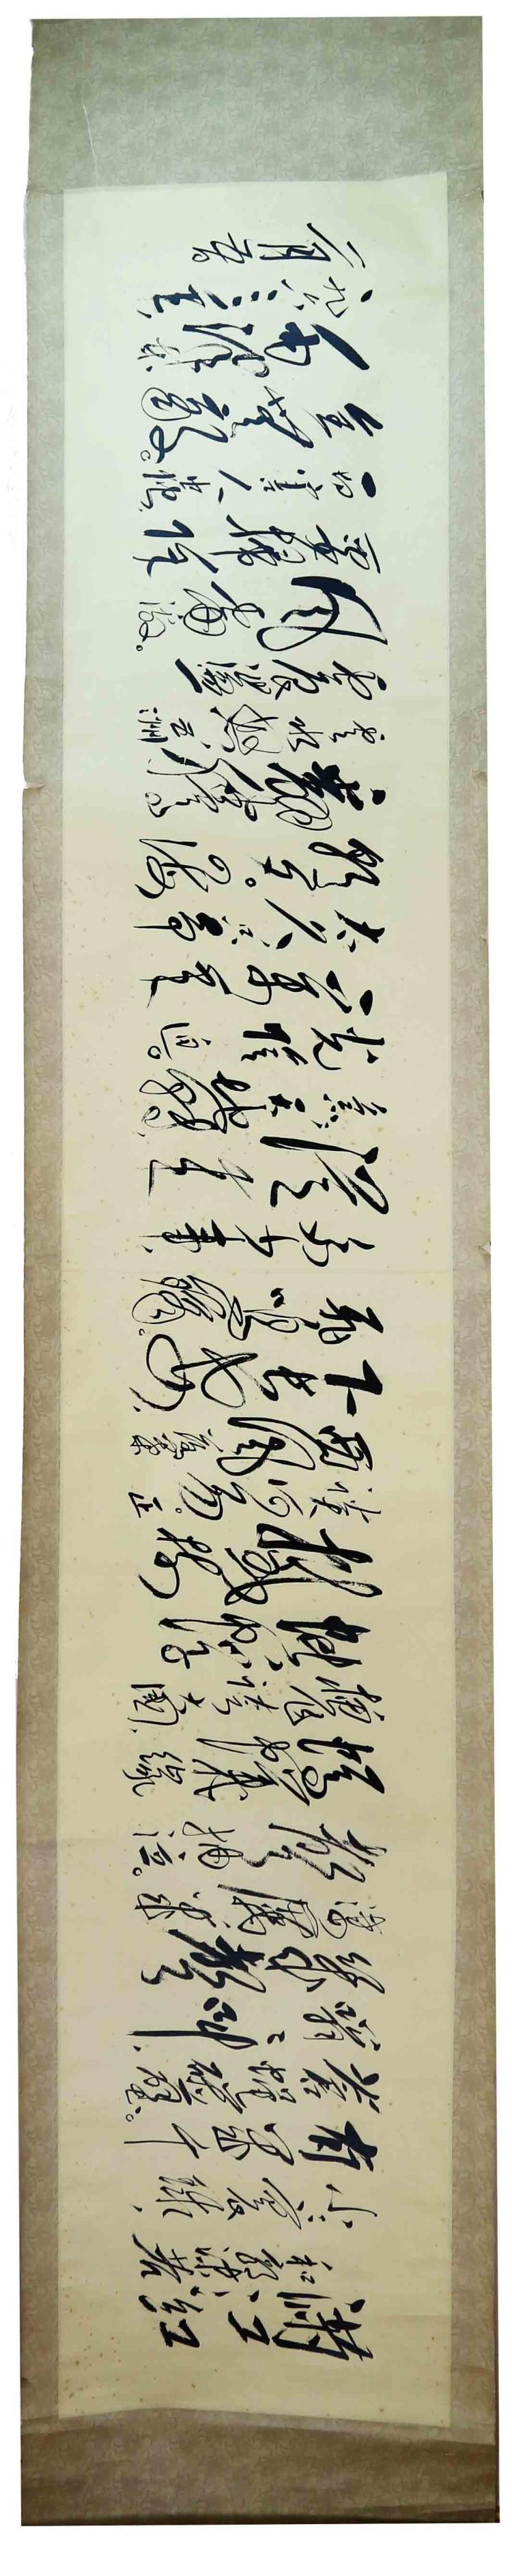 Chinese printing on paper calligraphy scroll by Mao Zedong(1893-1976)